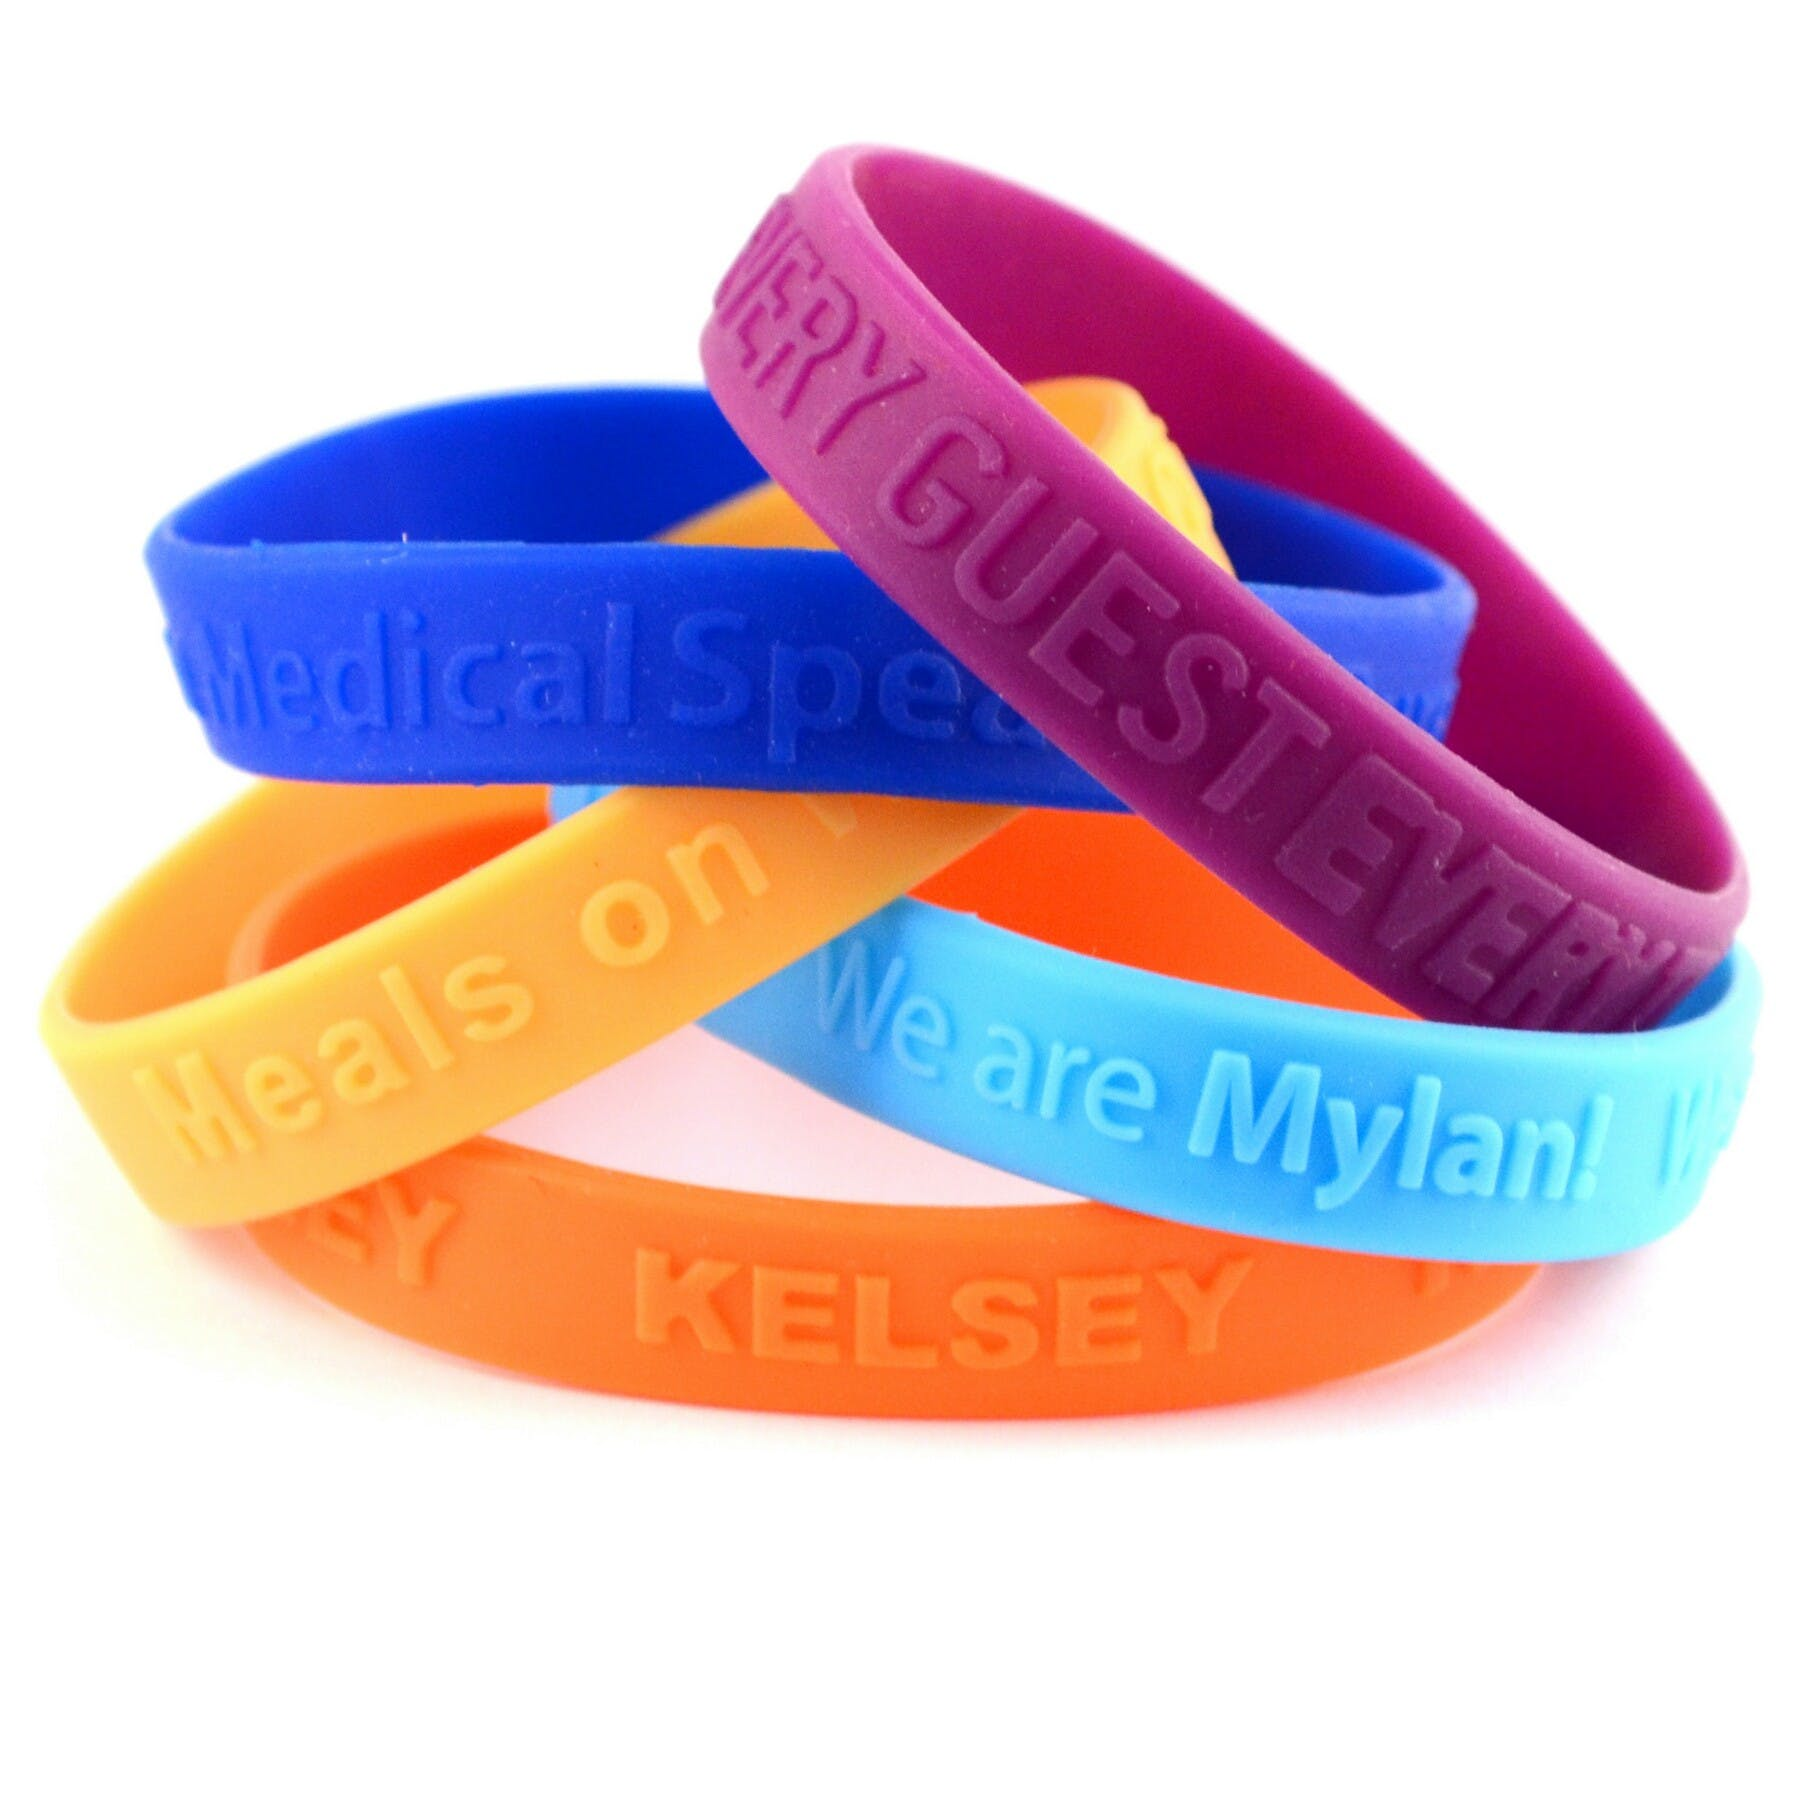 Embossed Wristband (Item # DIFMS-FZKED) Promotional wristband sold by InkEasy